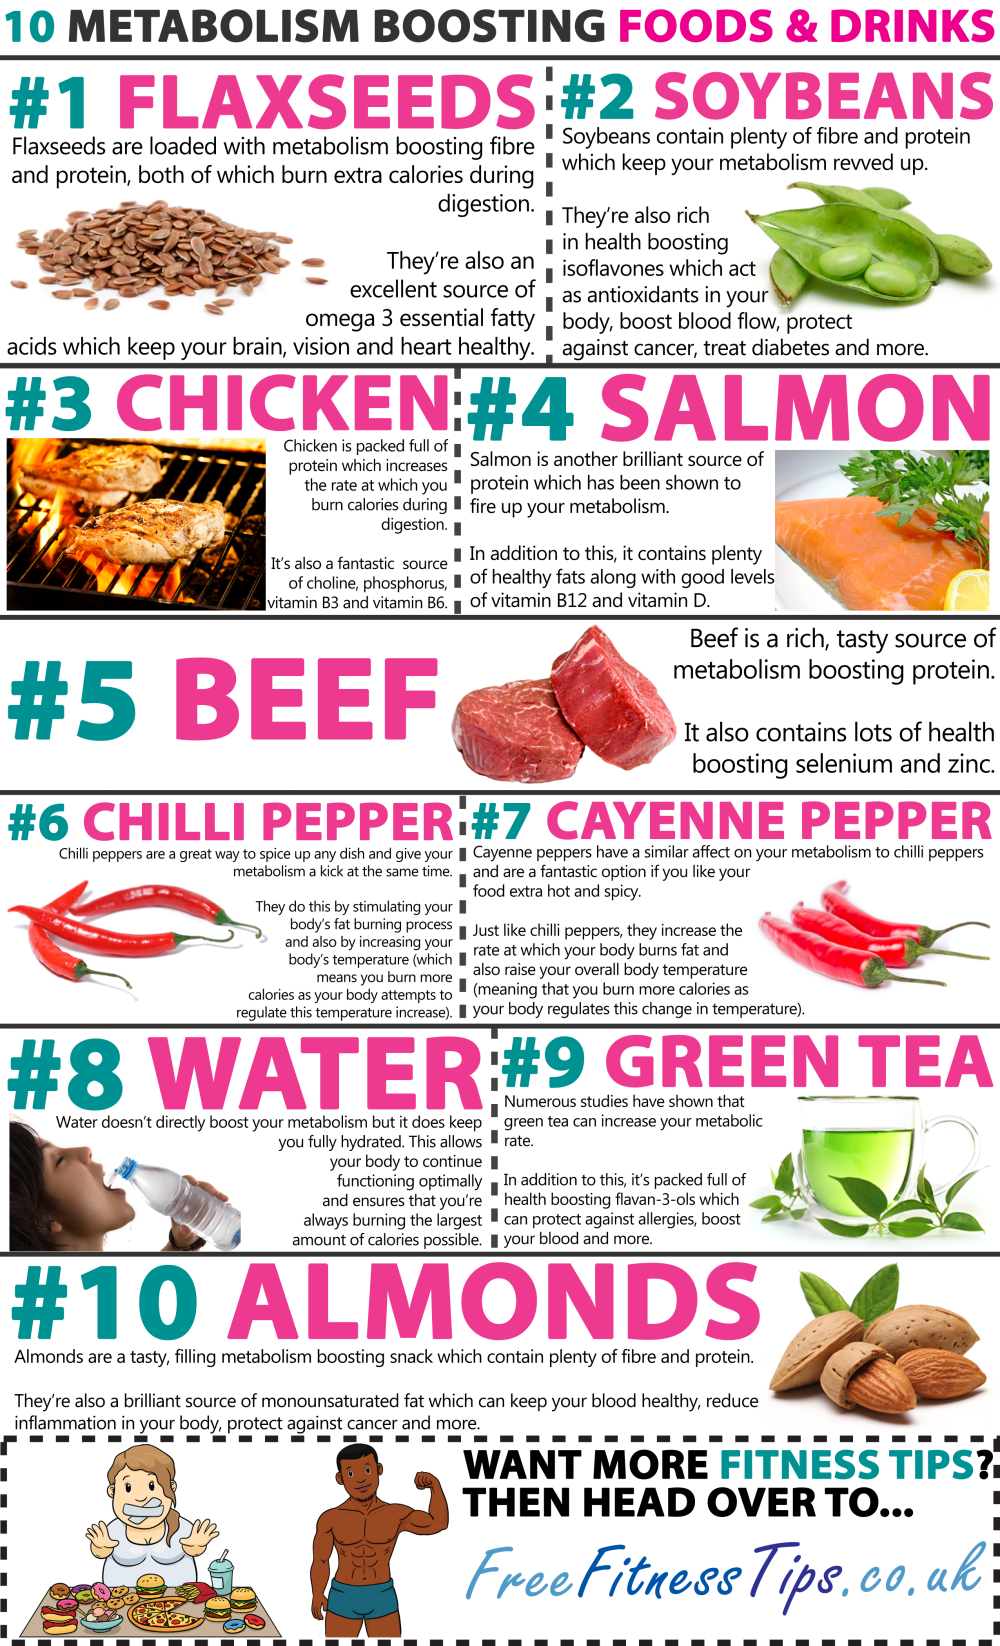 Best Foods And Drinks To Improve Your Metabolism